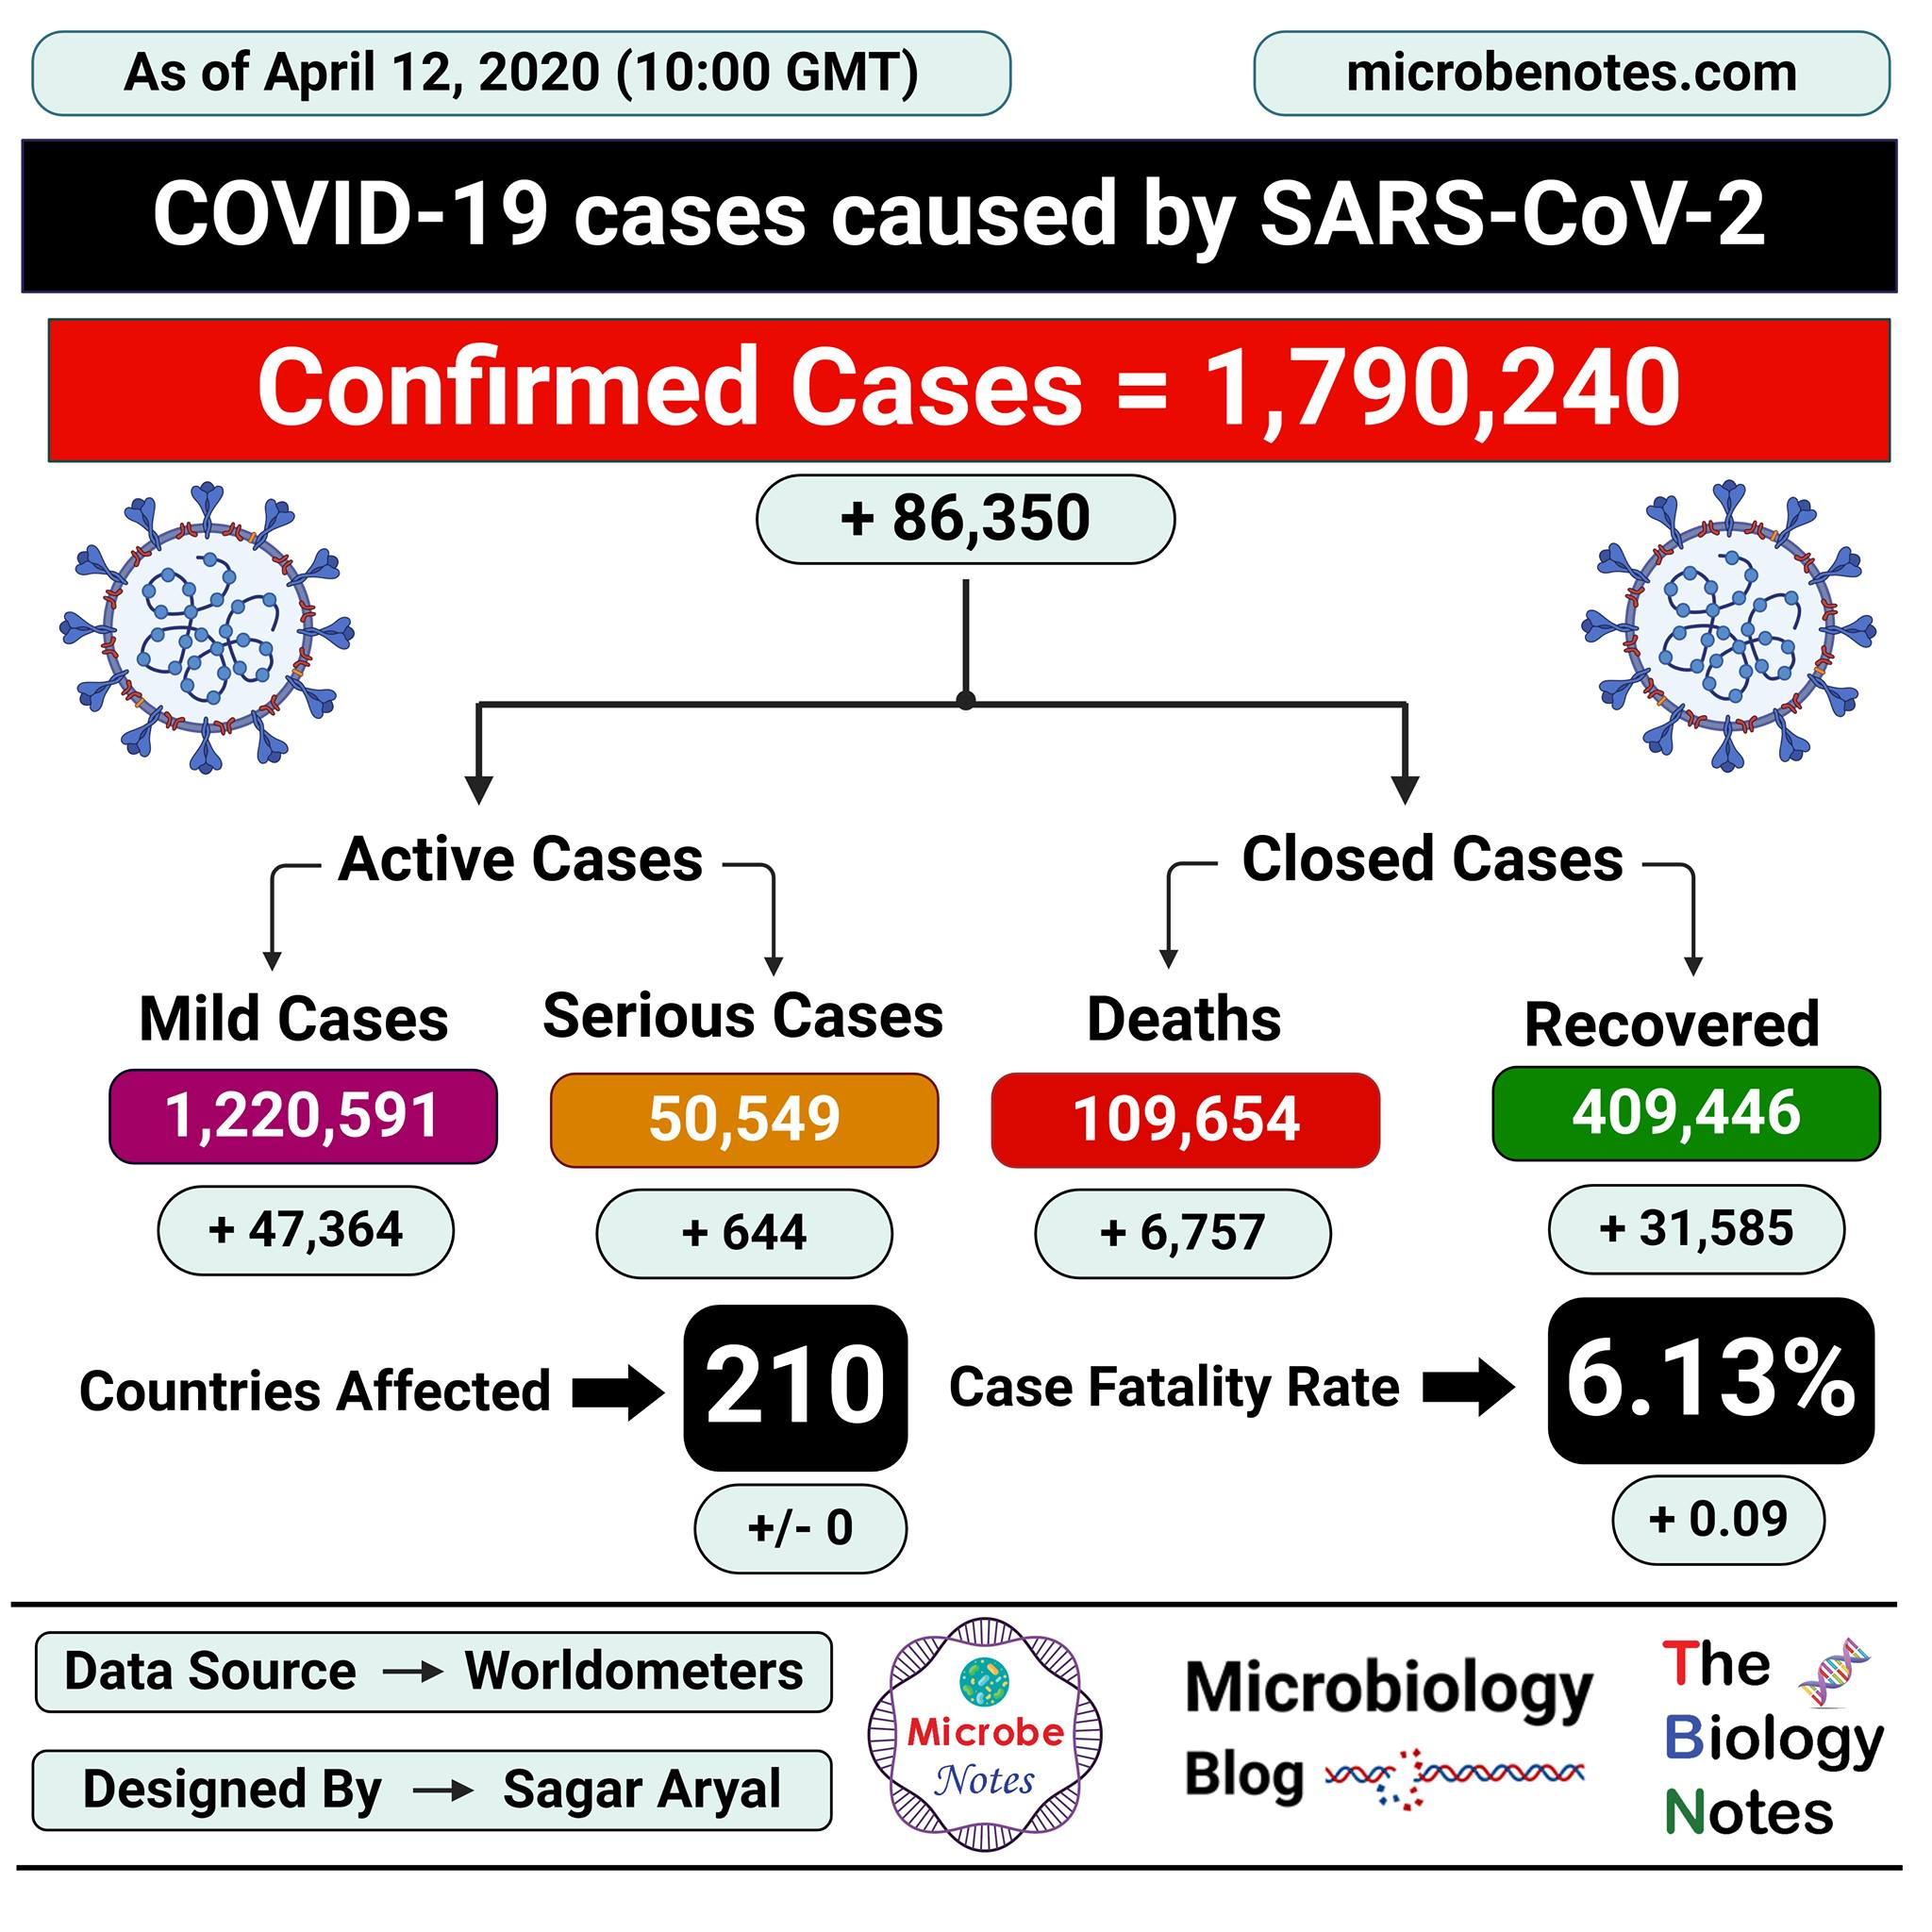 Epidemiology of COVID-19 caused by SARS-CoV-2 as of April 12, 2020